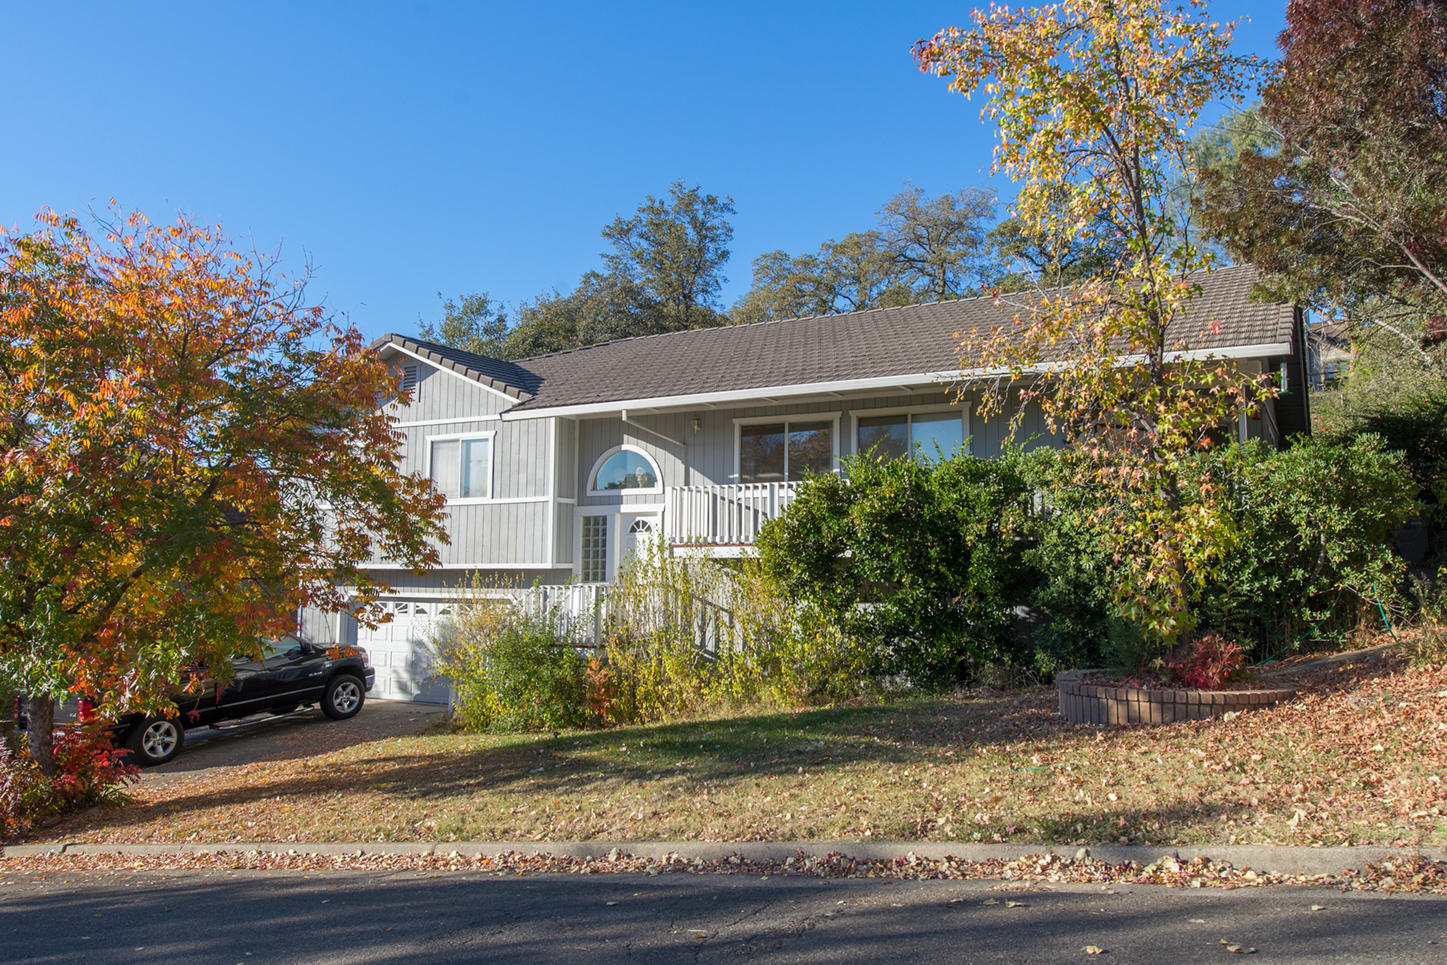 3 bed/2 bath Home in Redding for $285,000